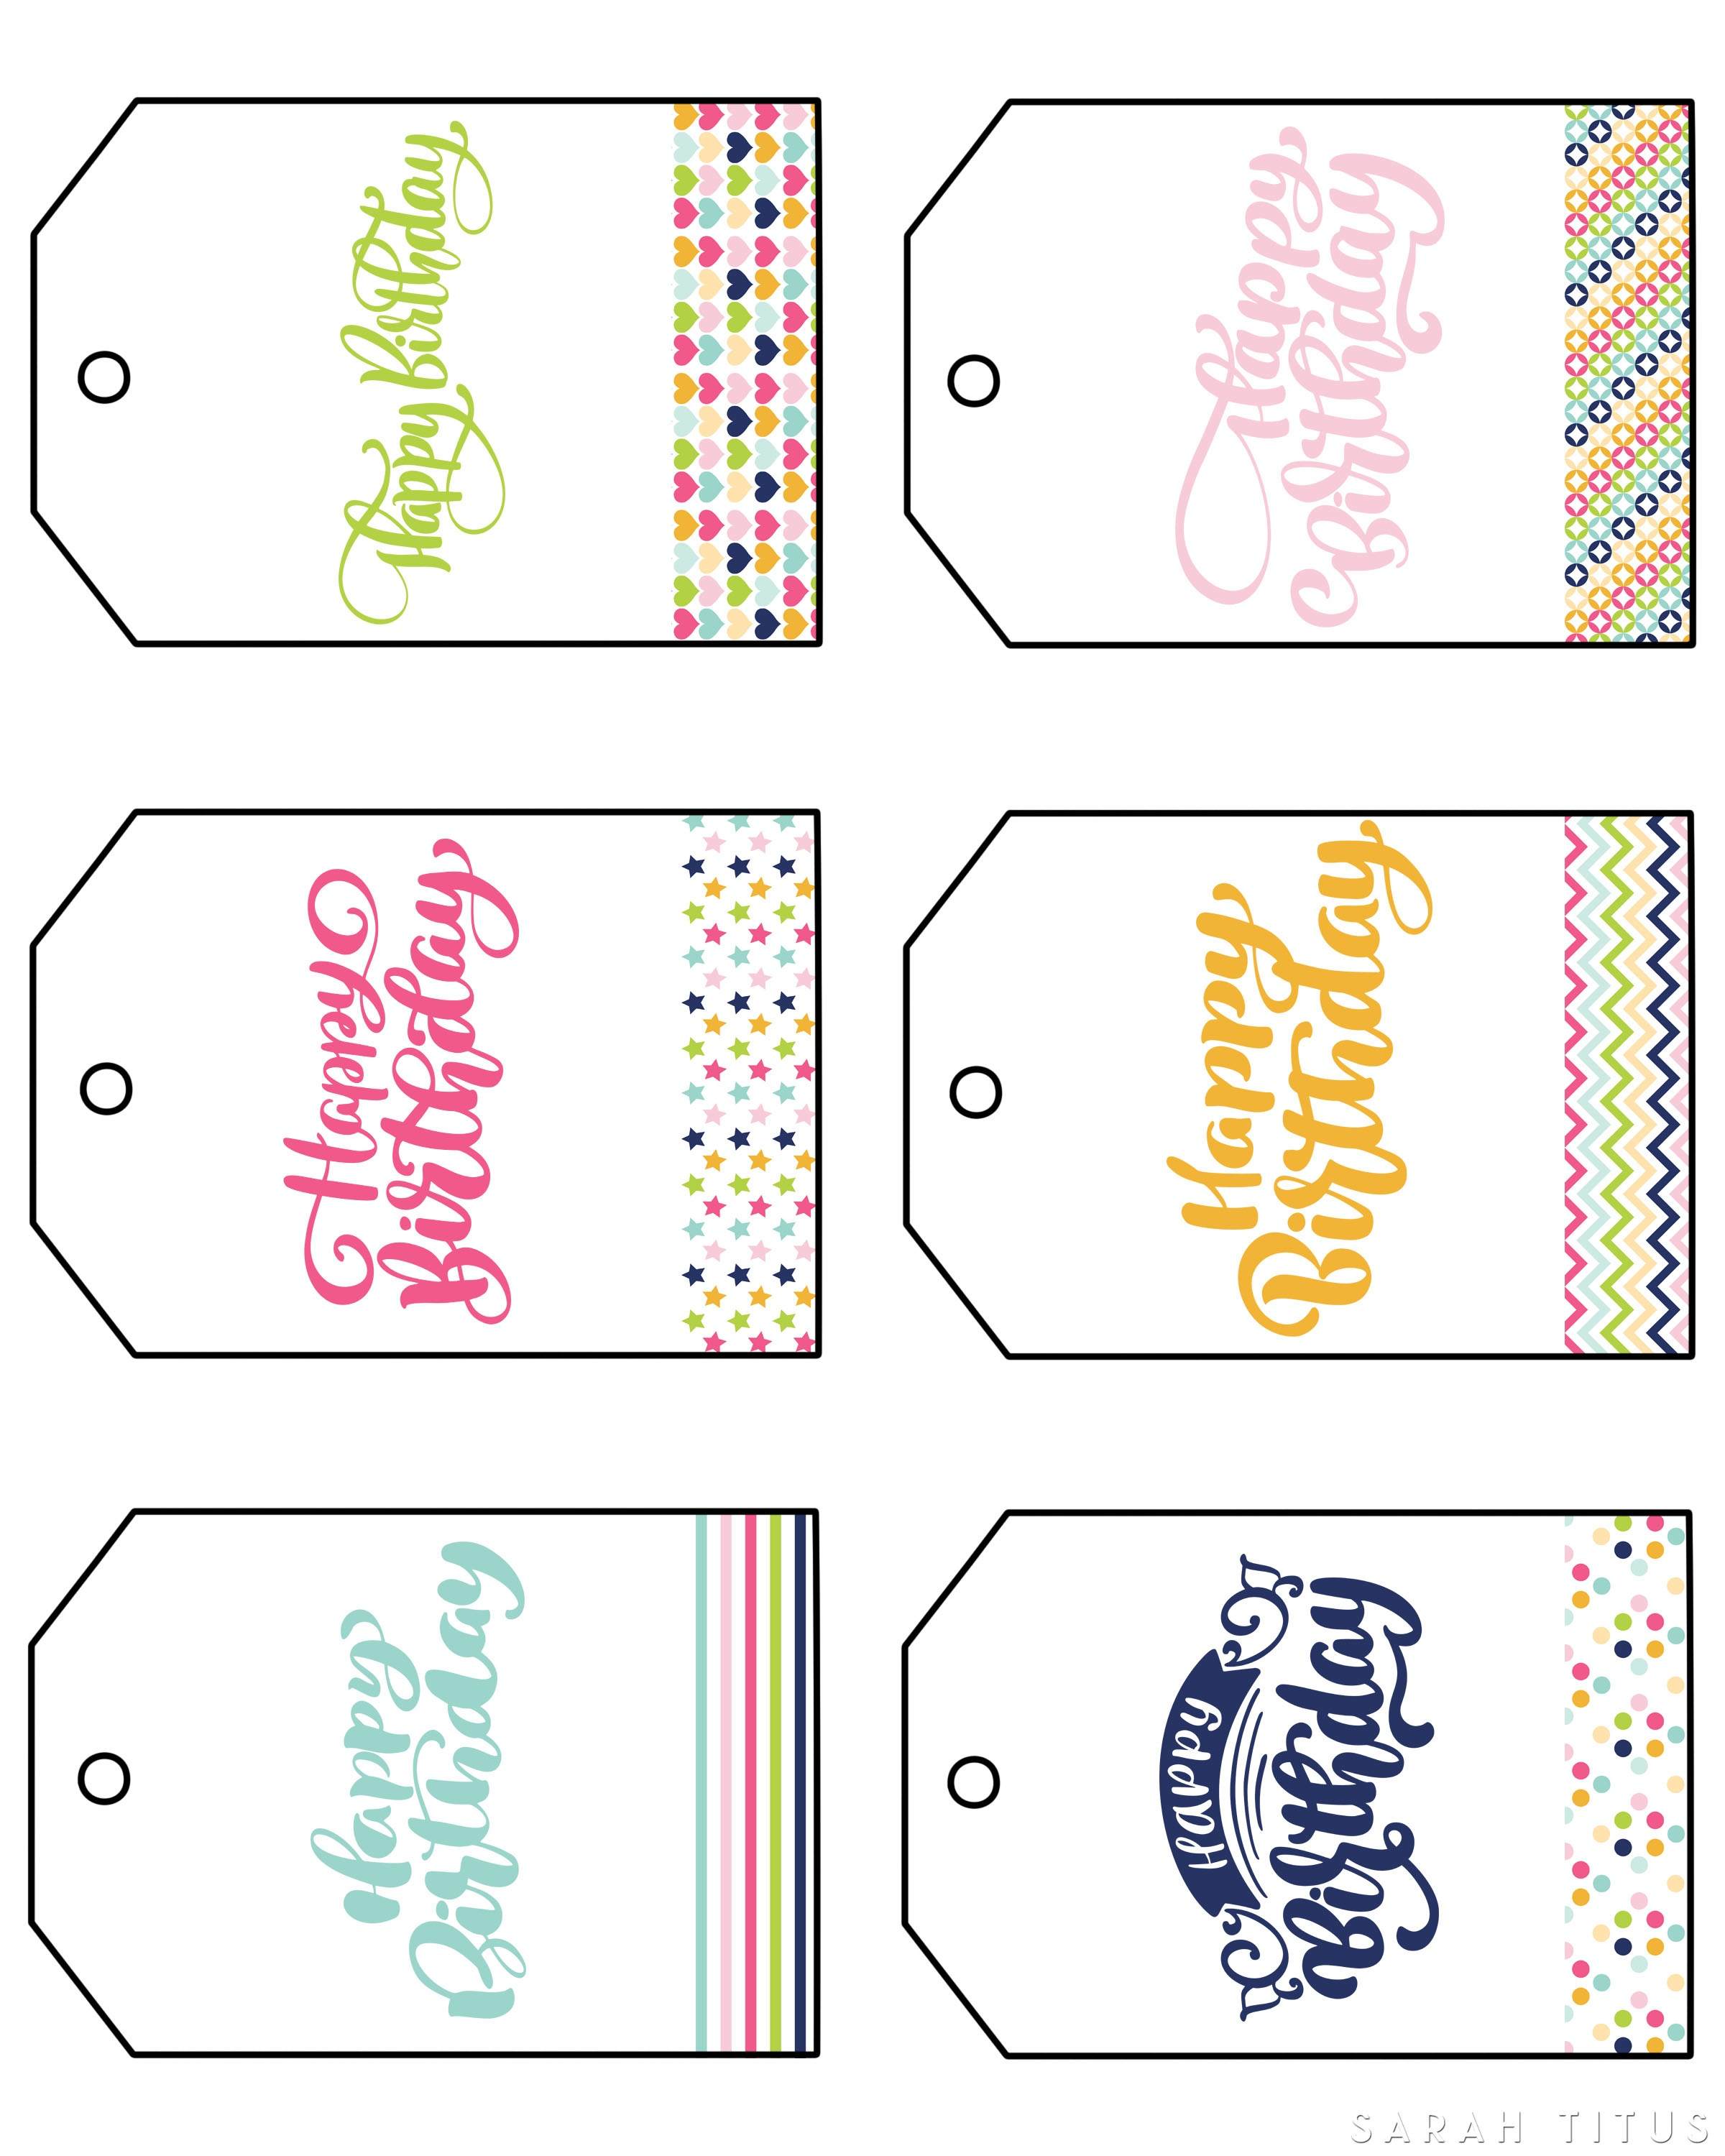 Free Printable Happy Birthday Gift Tags - Sarah Titus - Free Printable Gift Tags